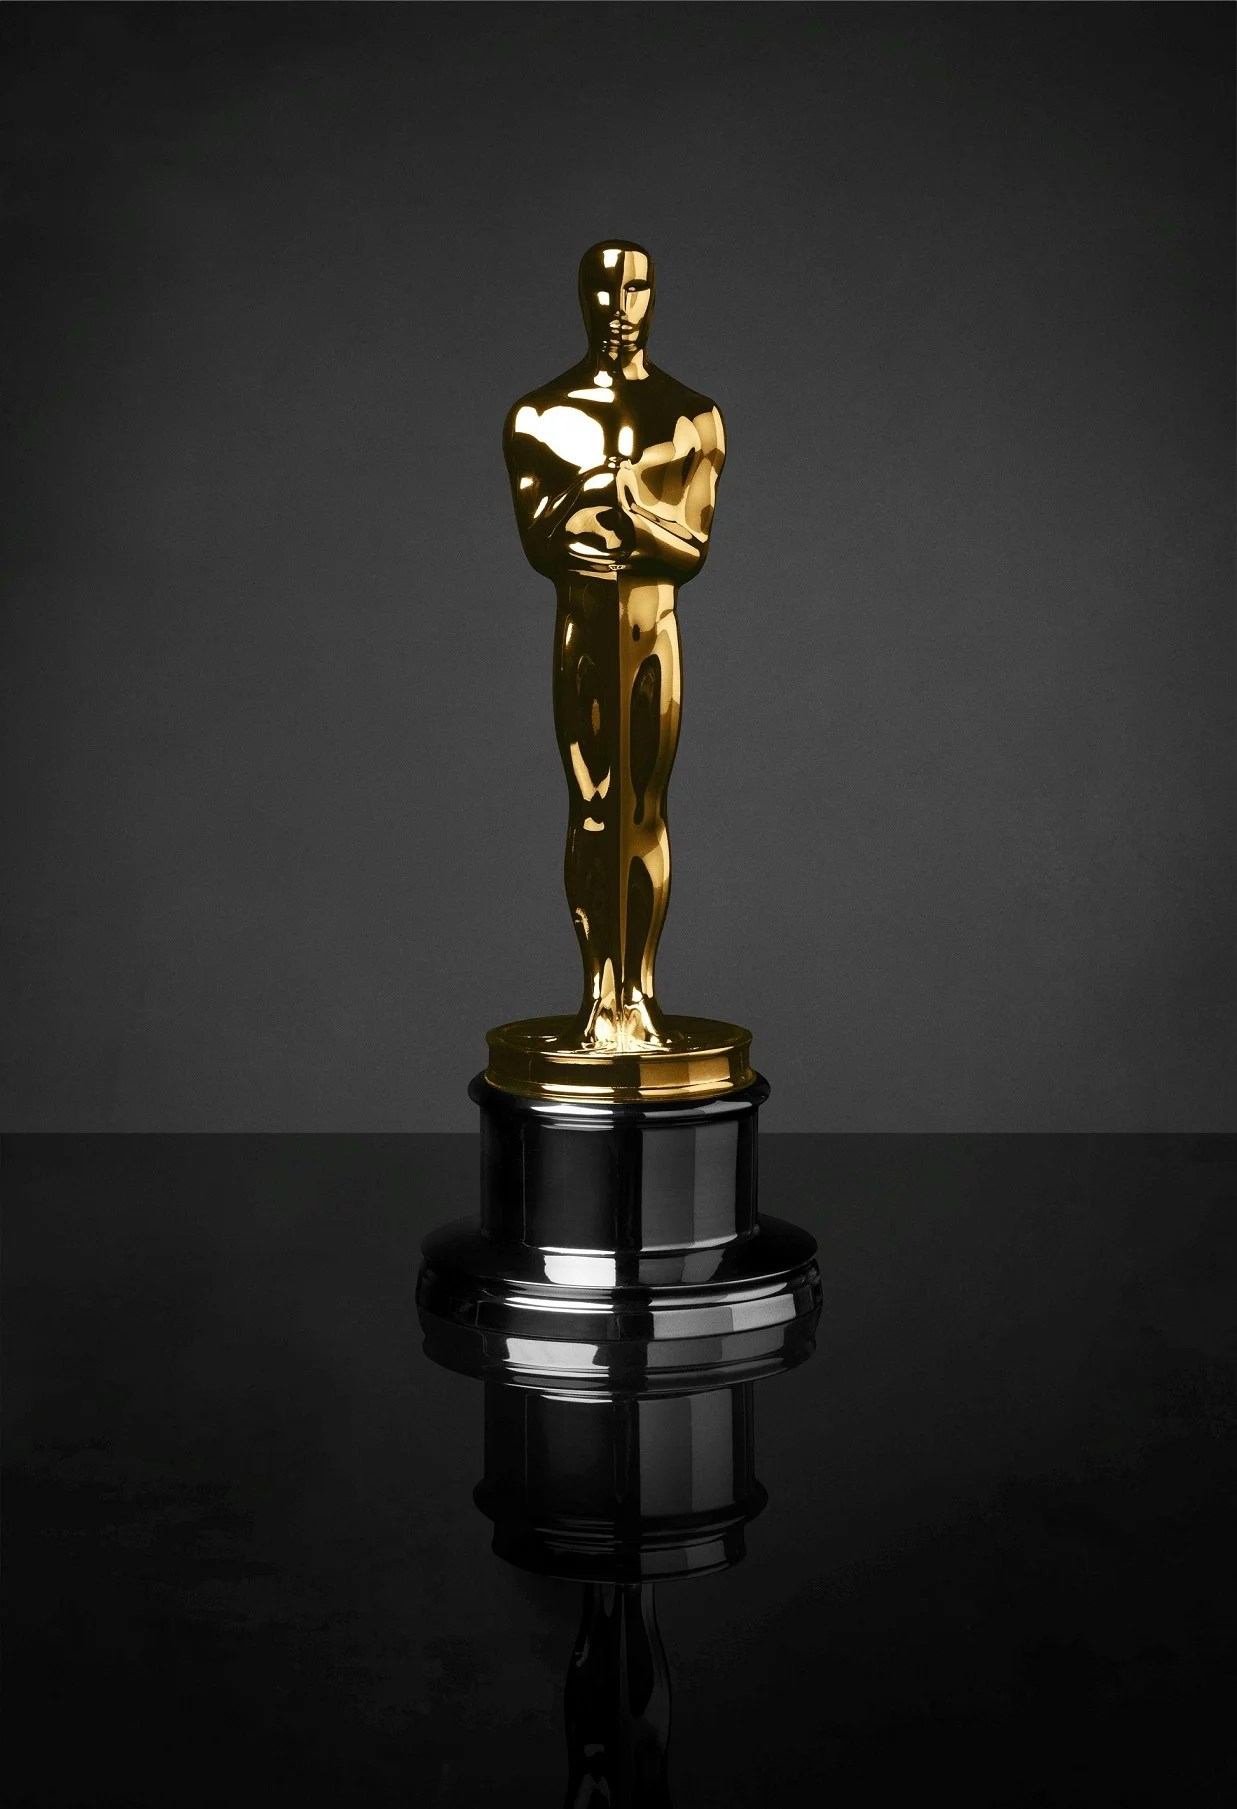 Oscars 2017 How to Watch Academy Awards Live in Middle